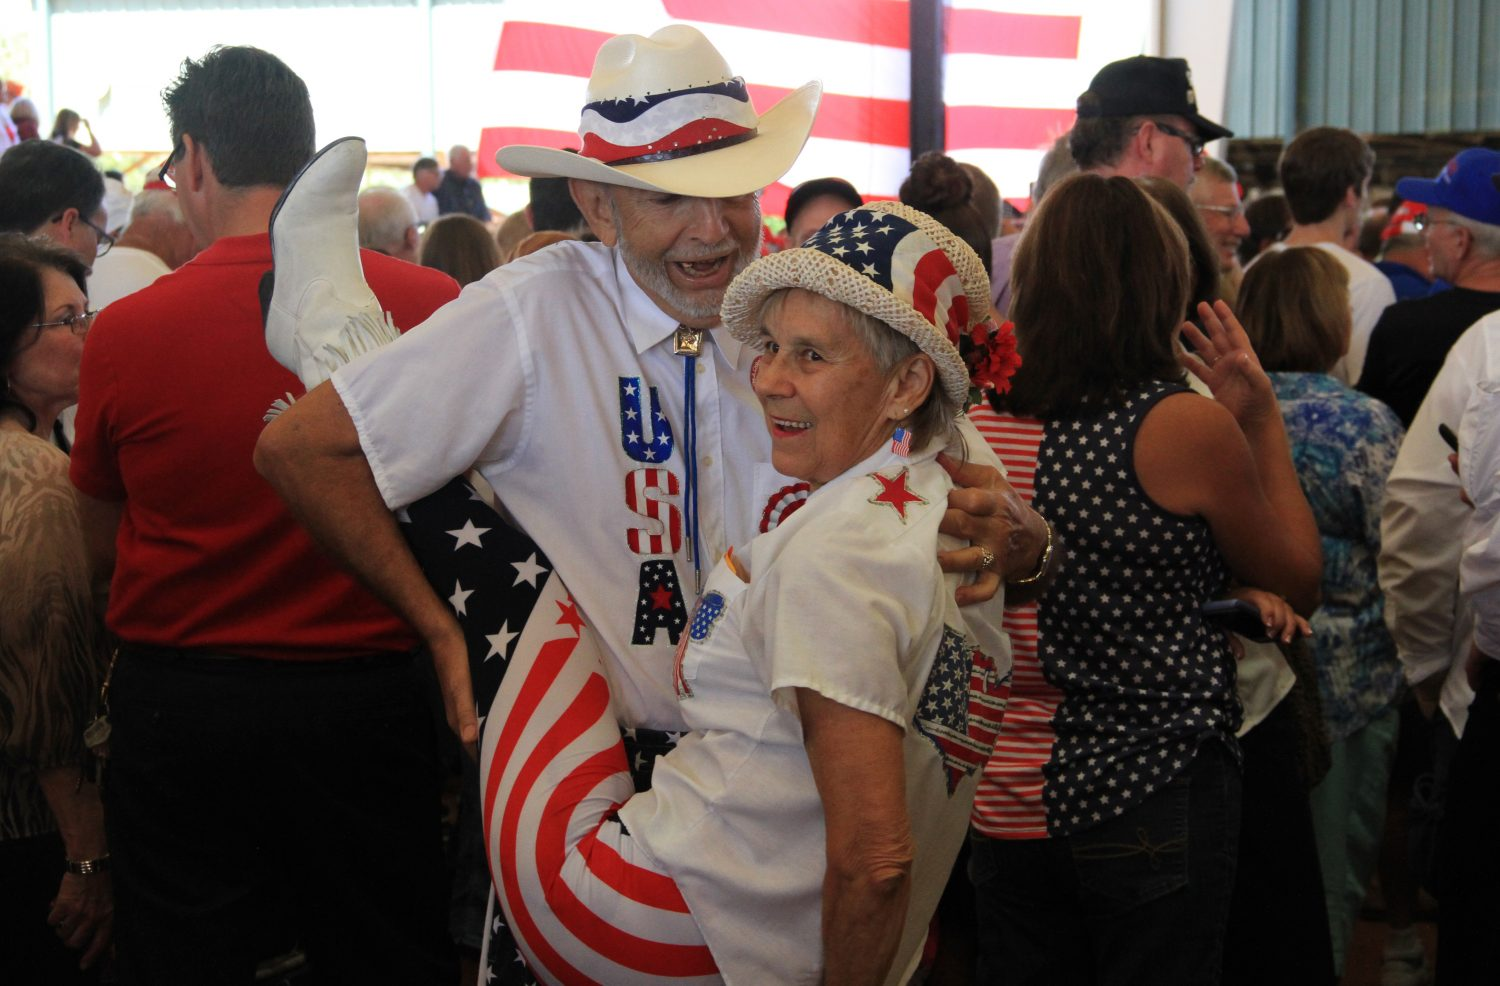 Elaine Lee and Veldon Colby dance while waiting for Donald Trump to speak Wednesday afternoon. The pair danced to the soundtrack of the Rolling Stones and Backstreet Boys that played over the course of the day, and occasionally during Trump's roughly hour-long speech.